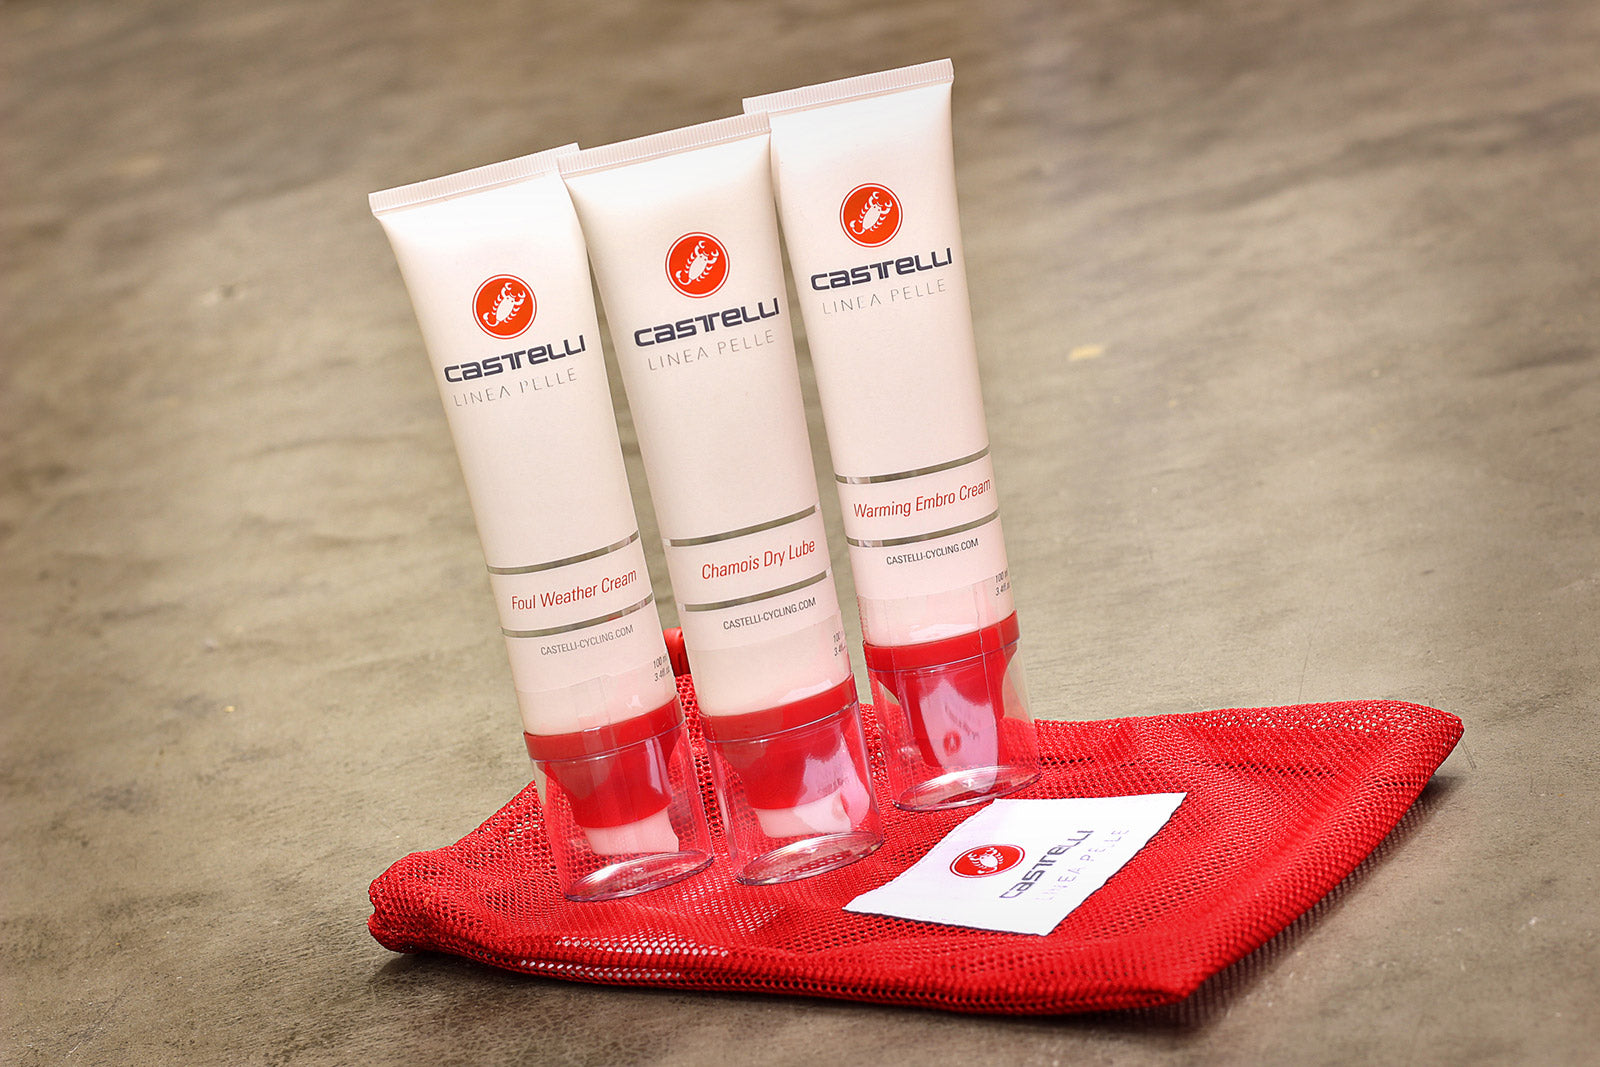 Castelli Linea Pelle Skin Care: Up Close